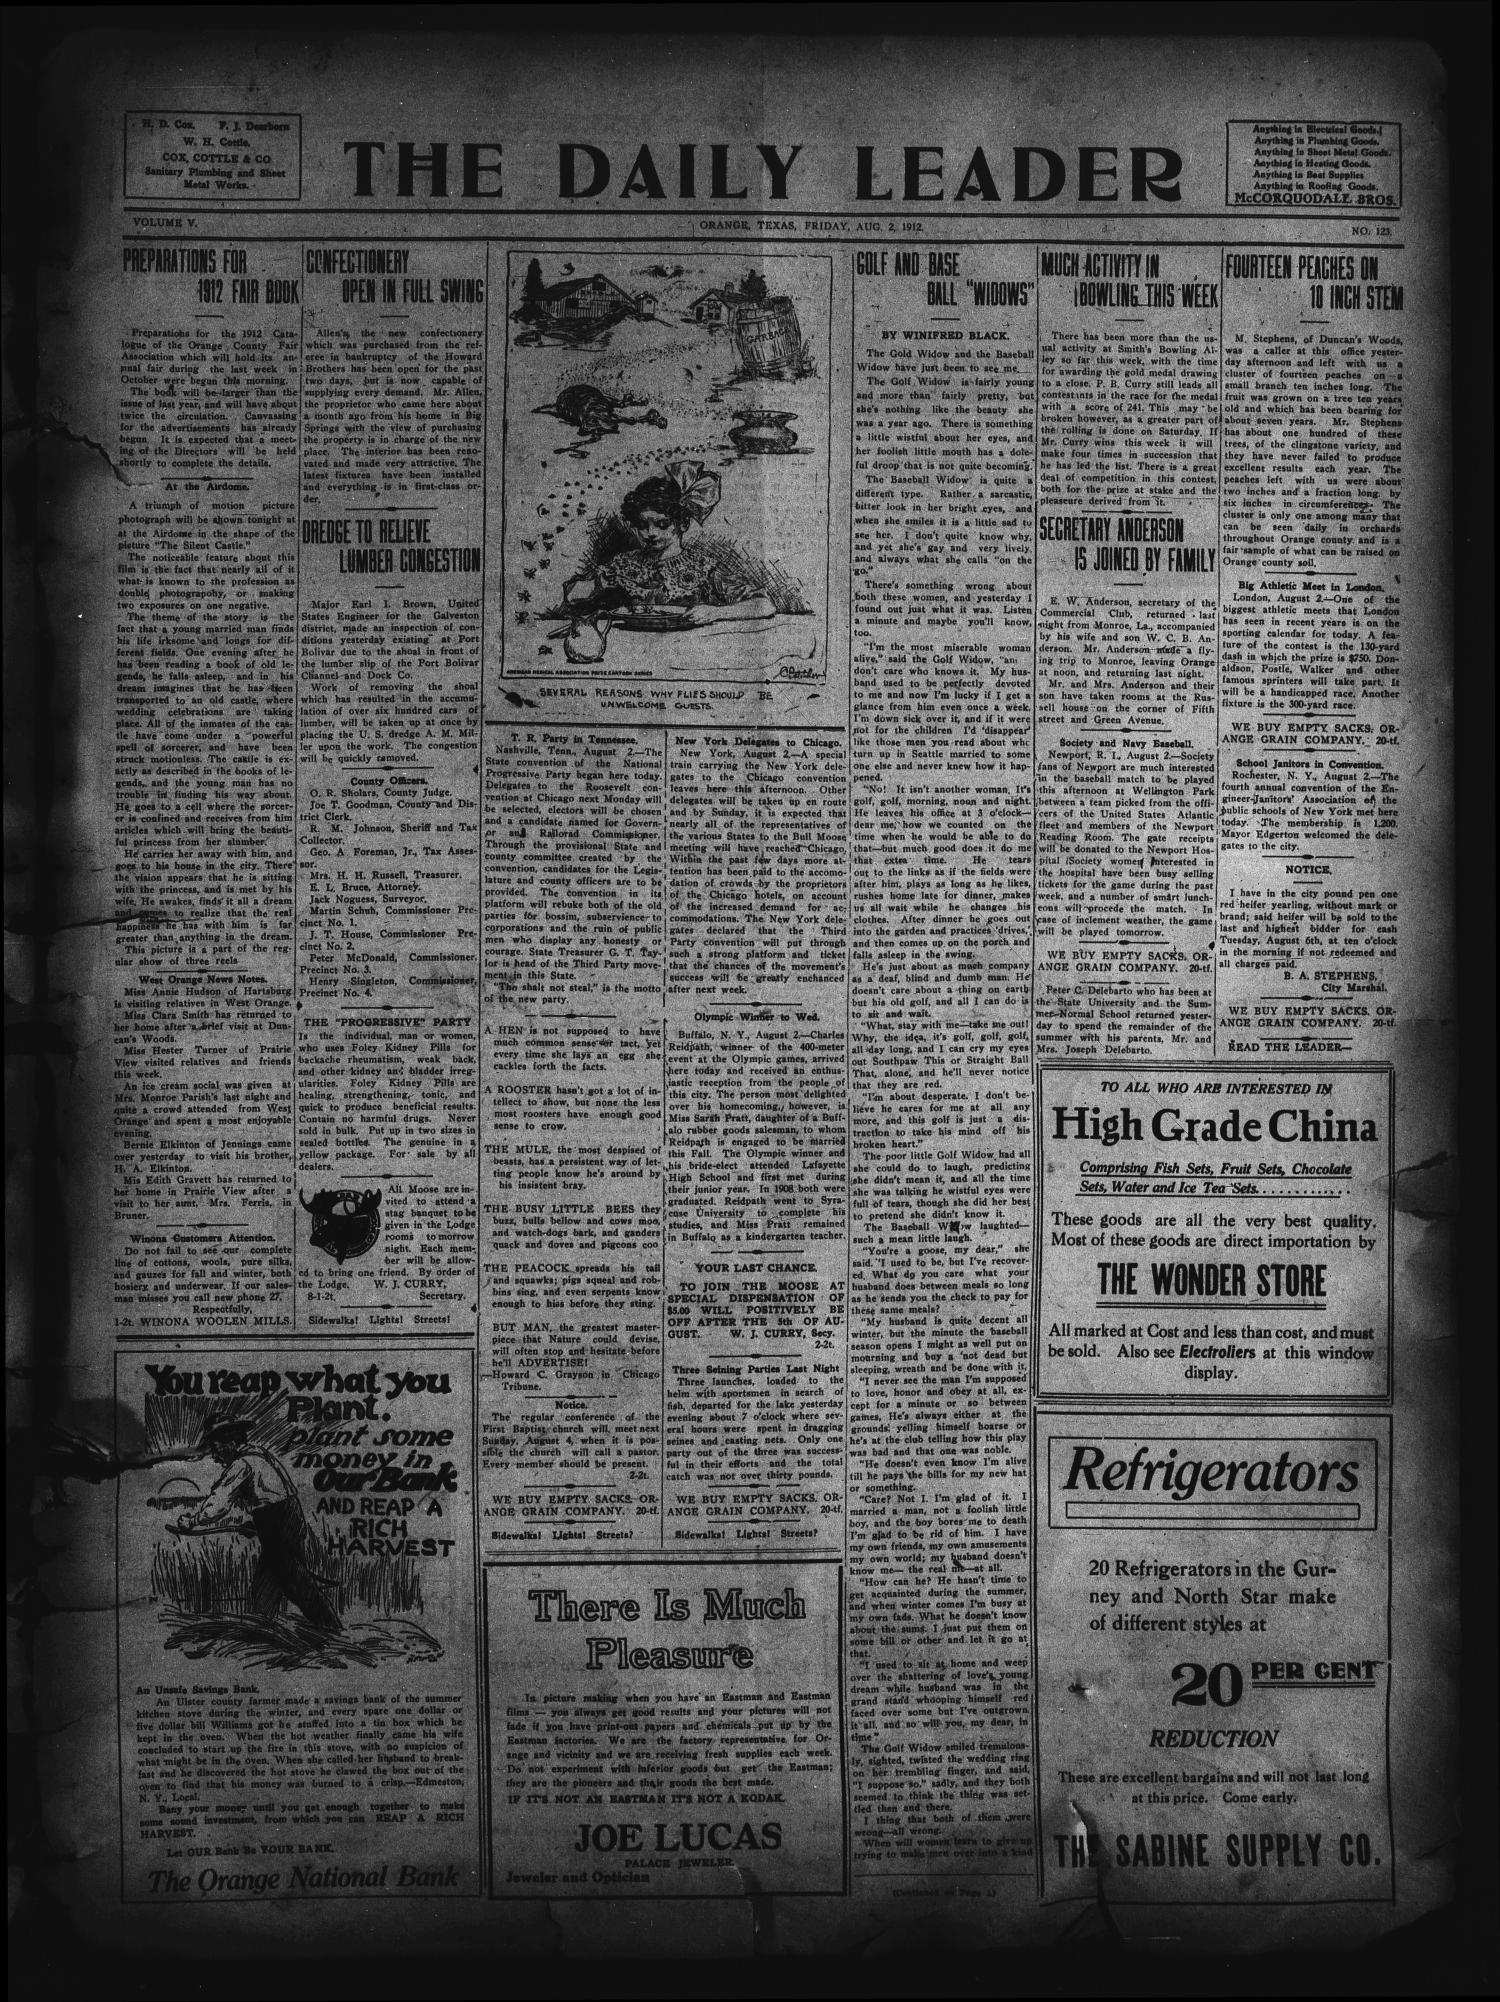 The Daily Leader. (Orange, Tex.), Vol. 5, No. 123, Ed. 1 Friday, August 2, 1912                                                                                                      [Sequence #]: 1 of 4